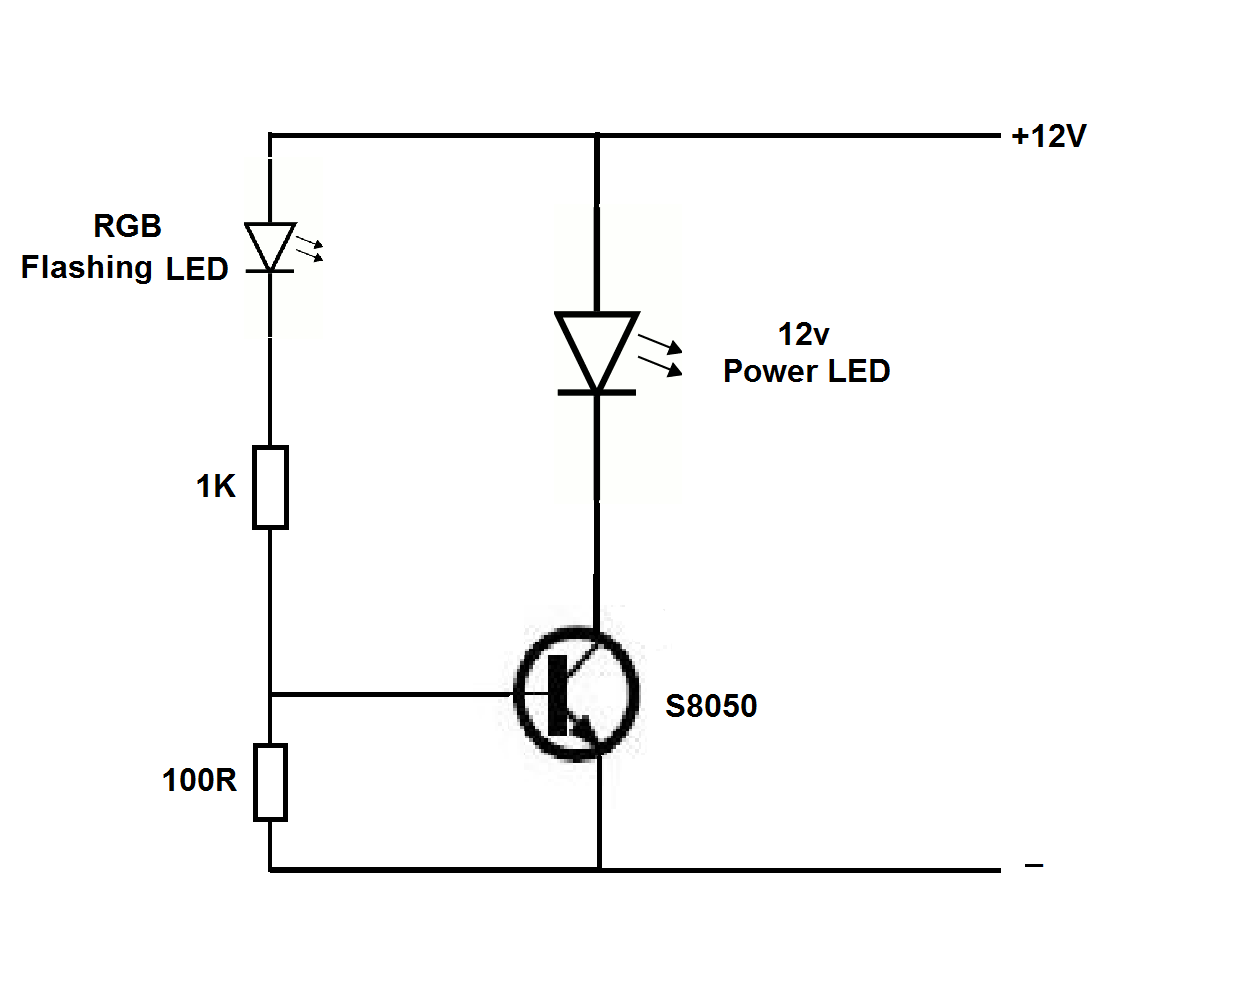 12v led circuit diagram   23 wiring diagram images